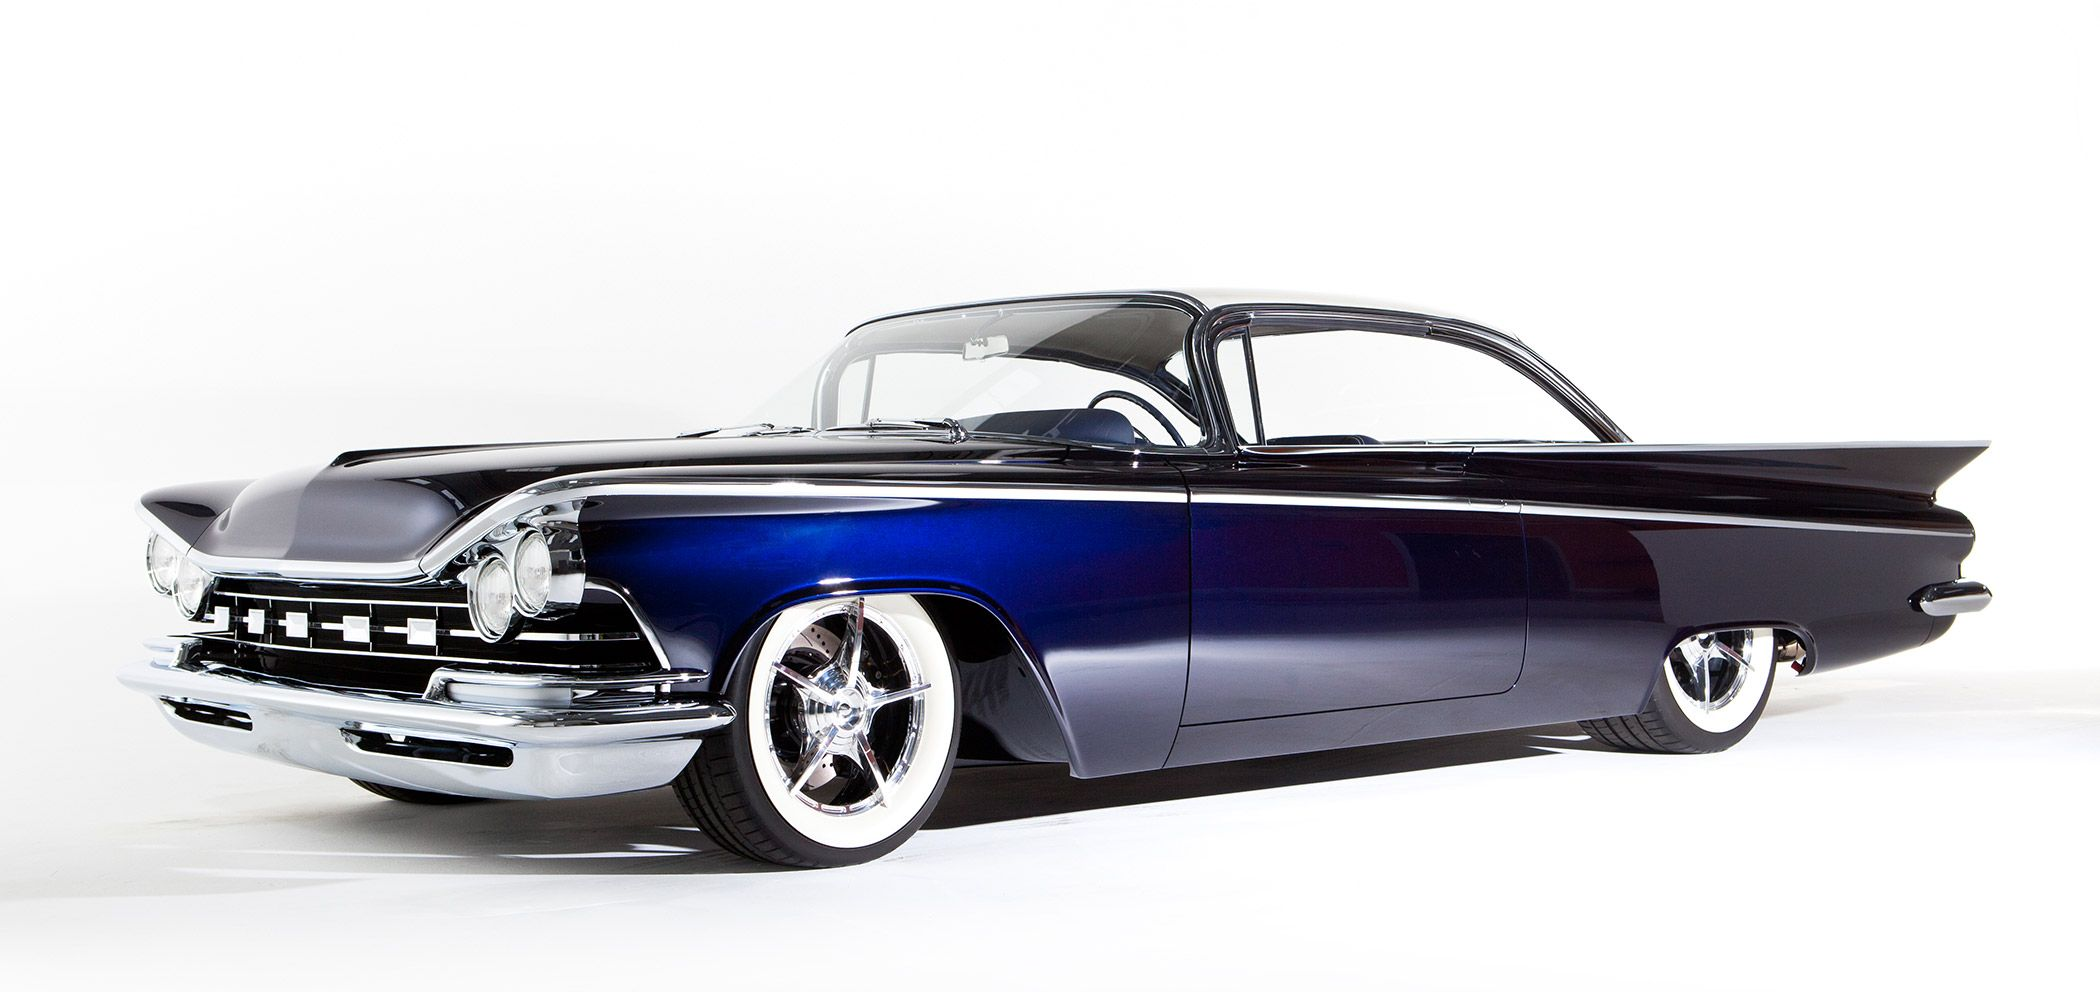 59 buick invicta kindig it restomod pinterest cars custom cars and dream cars. Black Bedroom Furniture Sets. Home Design Ideas